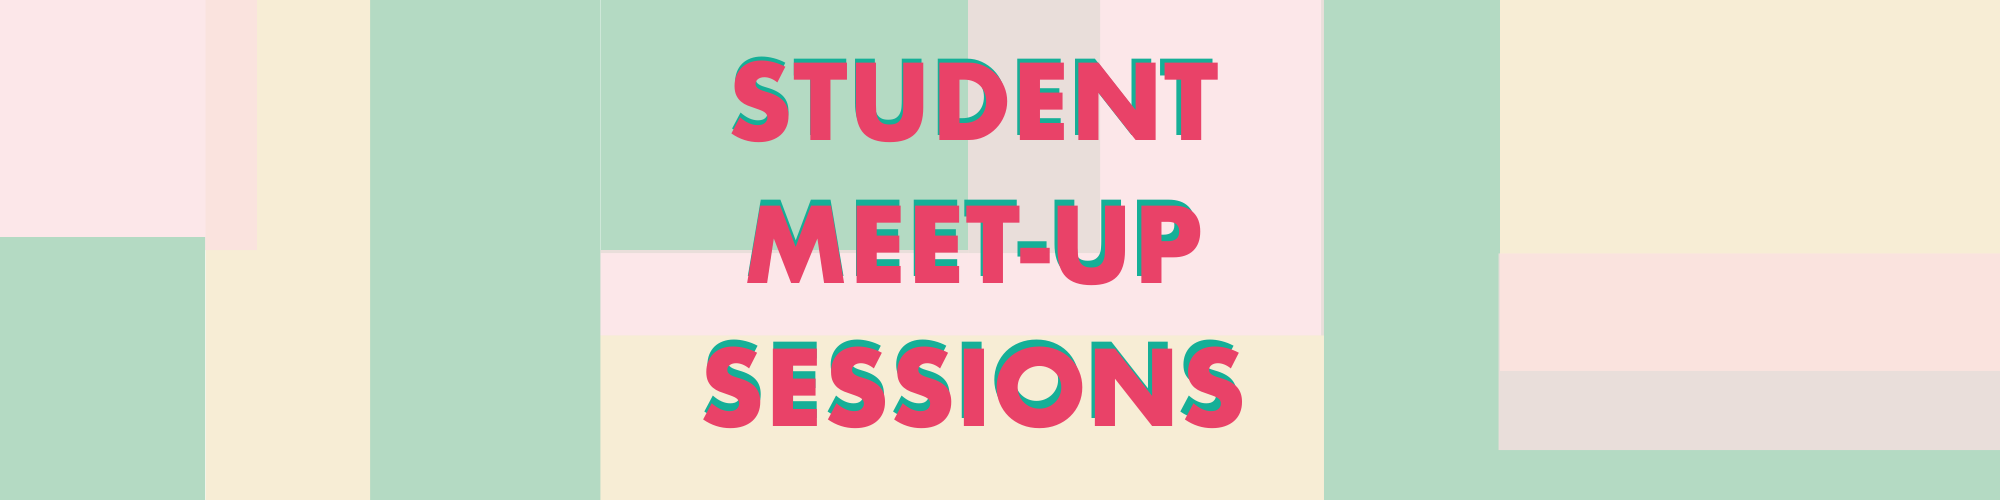 Student Meet- Up Sessions